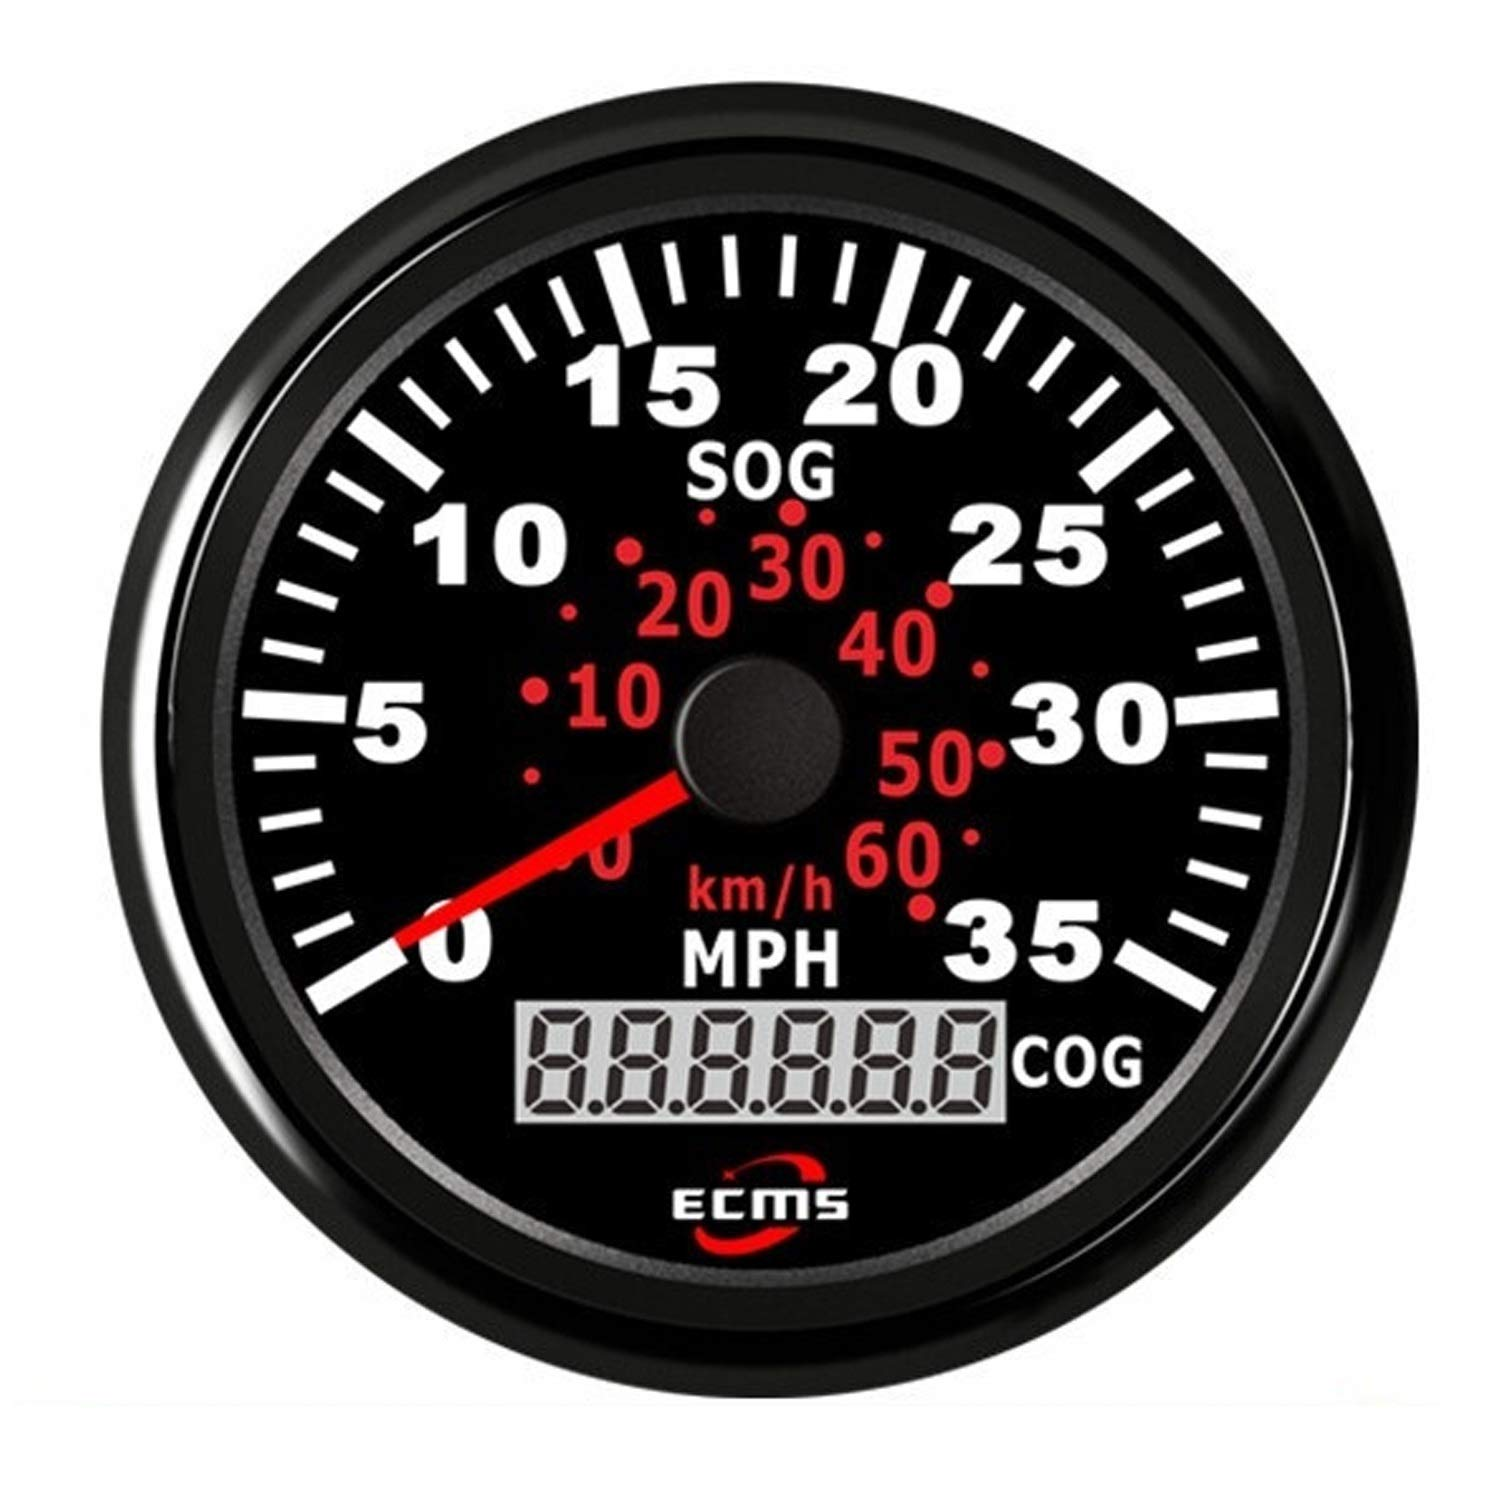 JUNJIAGAO-gauge Low Power Consumption Waterproof Boat Yacht 85mm GPS Speedometer 0-35MPH 0-60KM/H with COG, Waterproof, Lightning-Proof by JUNJIAGAO-gauge